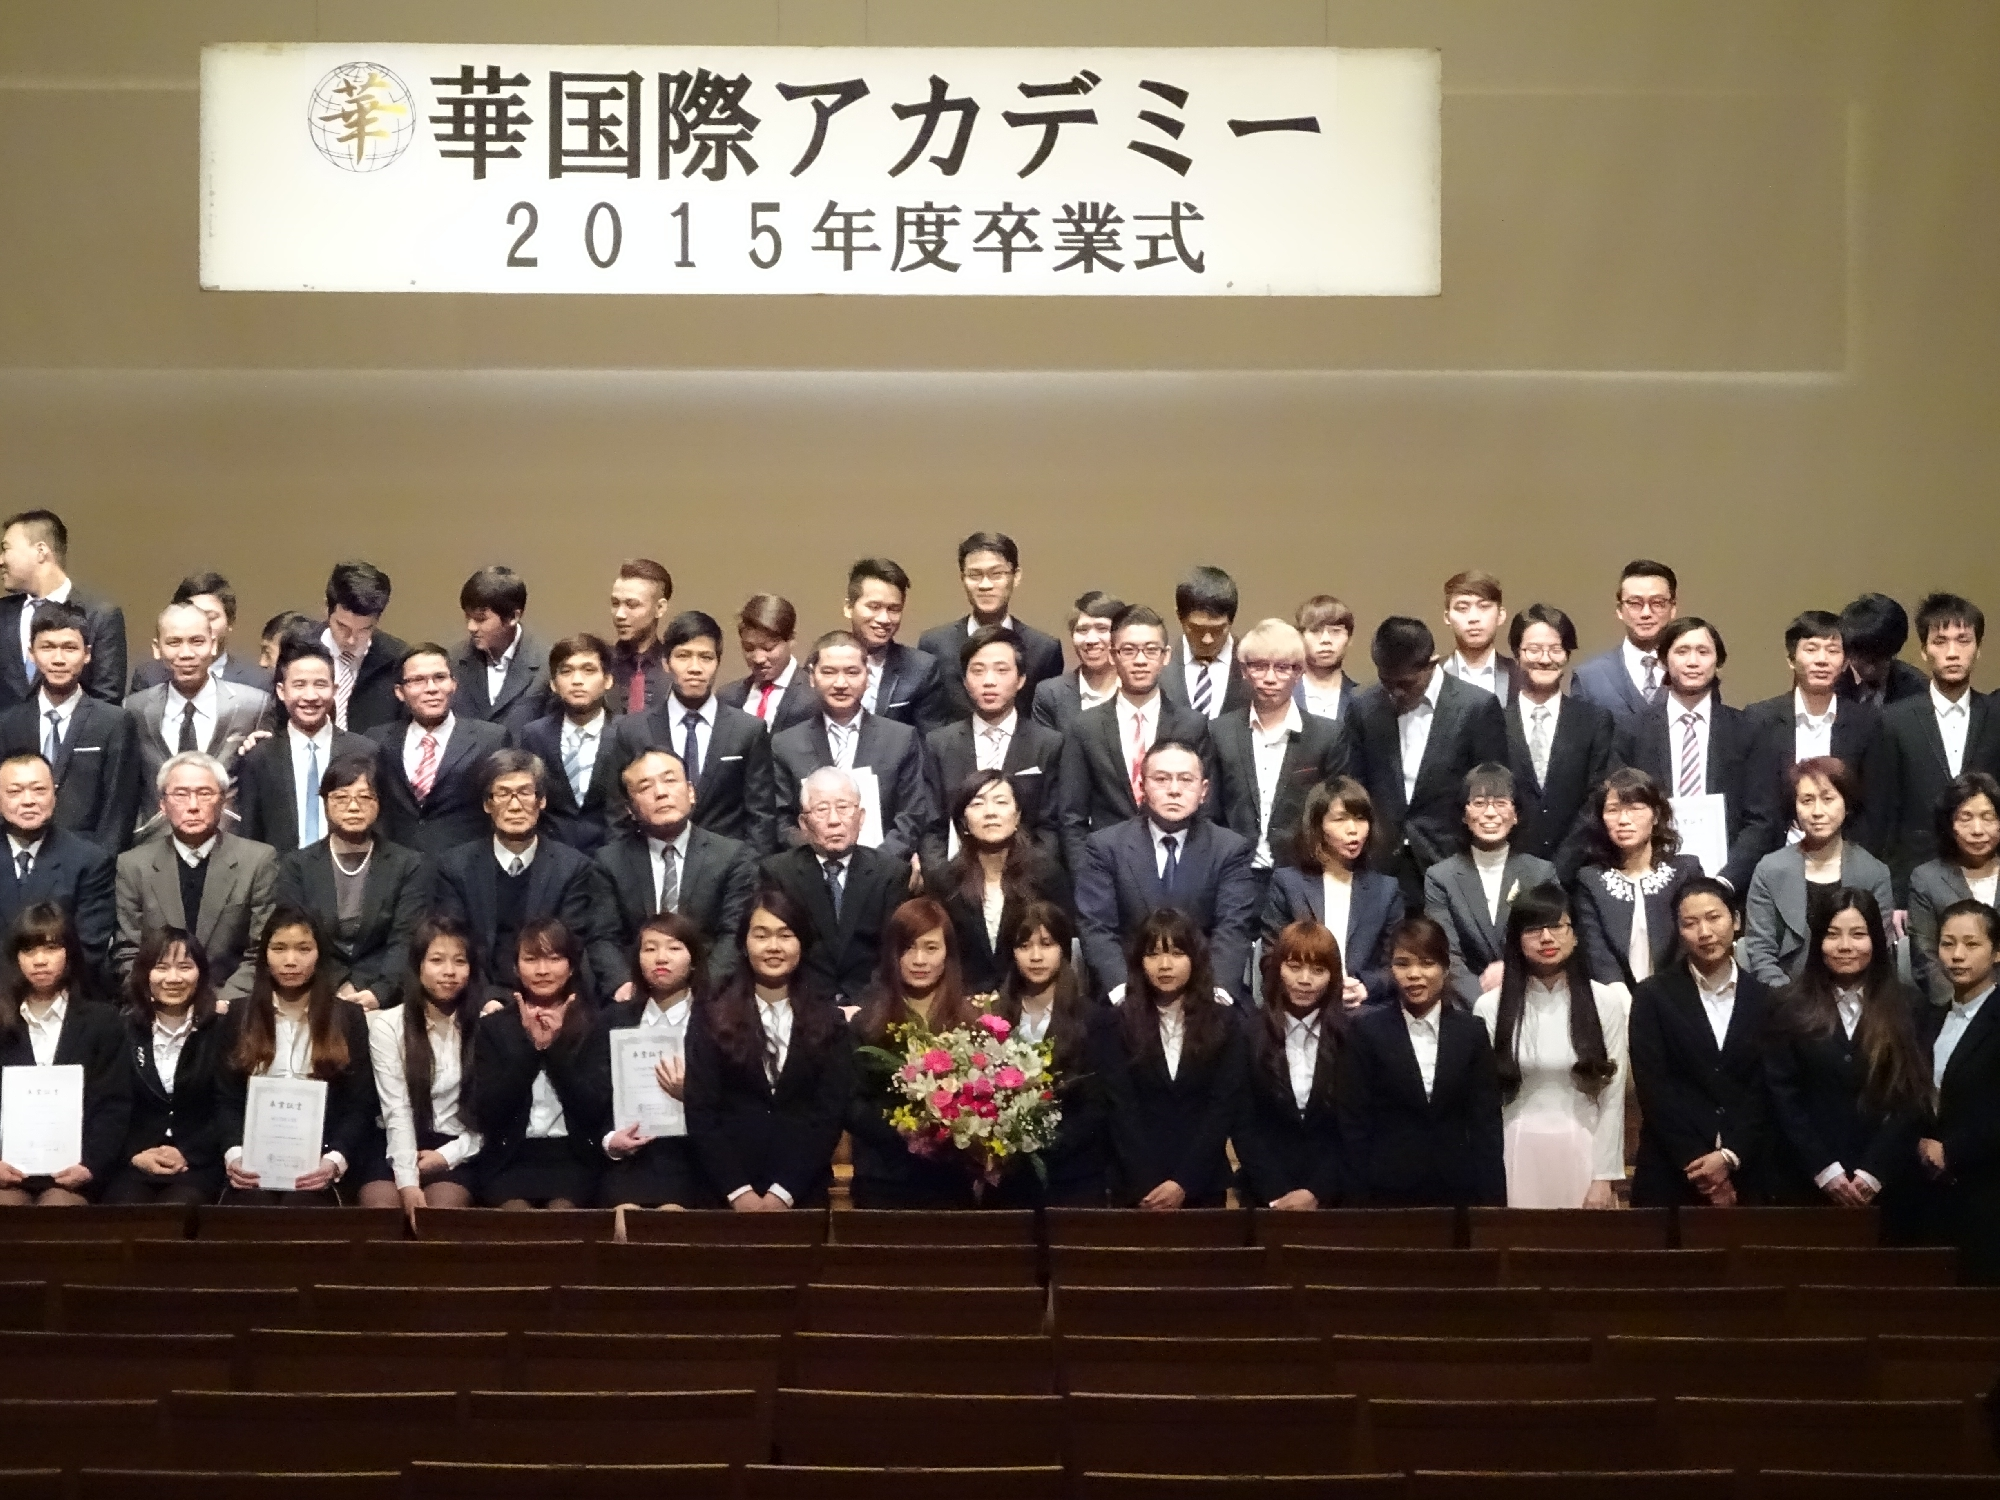 2016/03  2015年度卒業式   The graduation ceremony for the 2015 students.